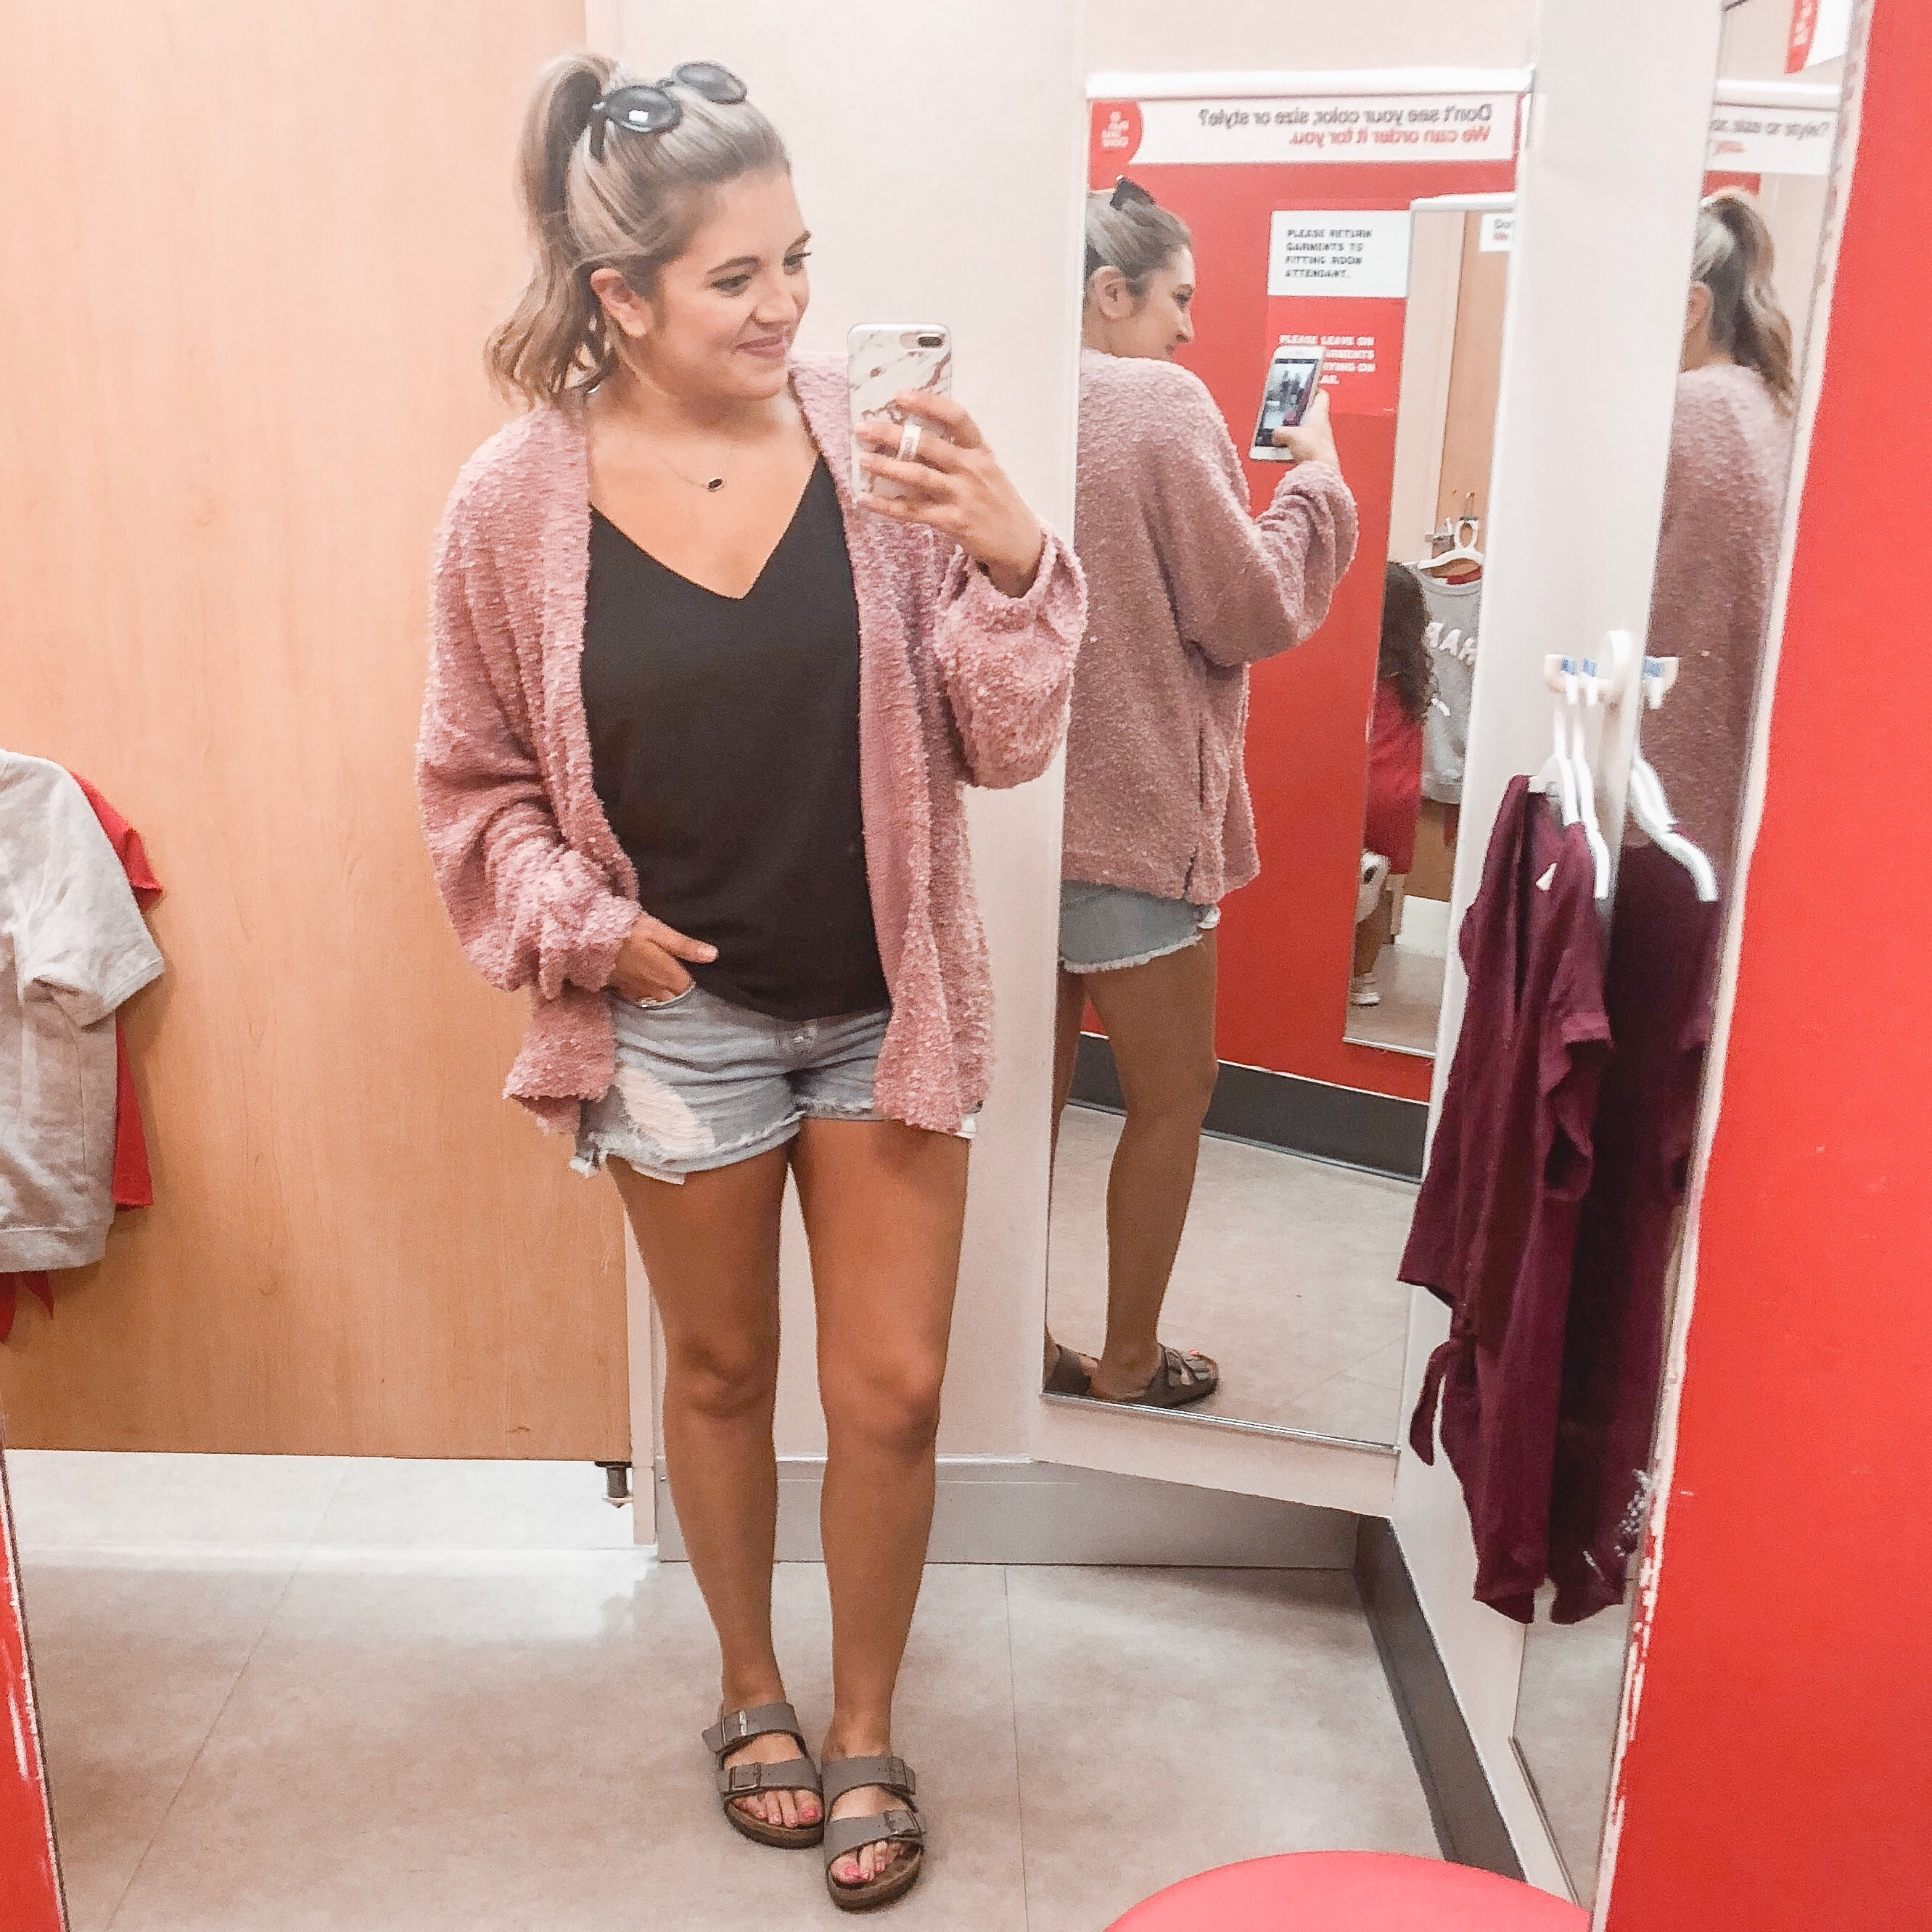 target fall clothes 2018 | See more fall pregnancy outfits and postpartum outfits in my August Instagram outfit roundup! bylaurenm.com